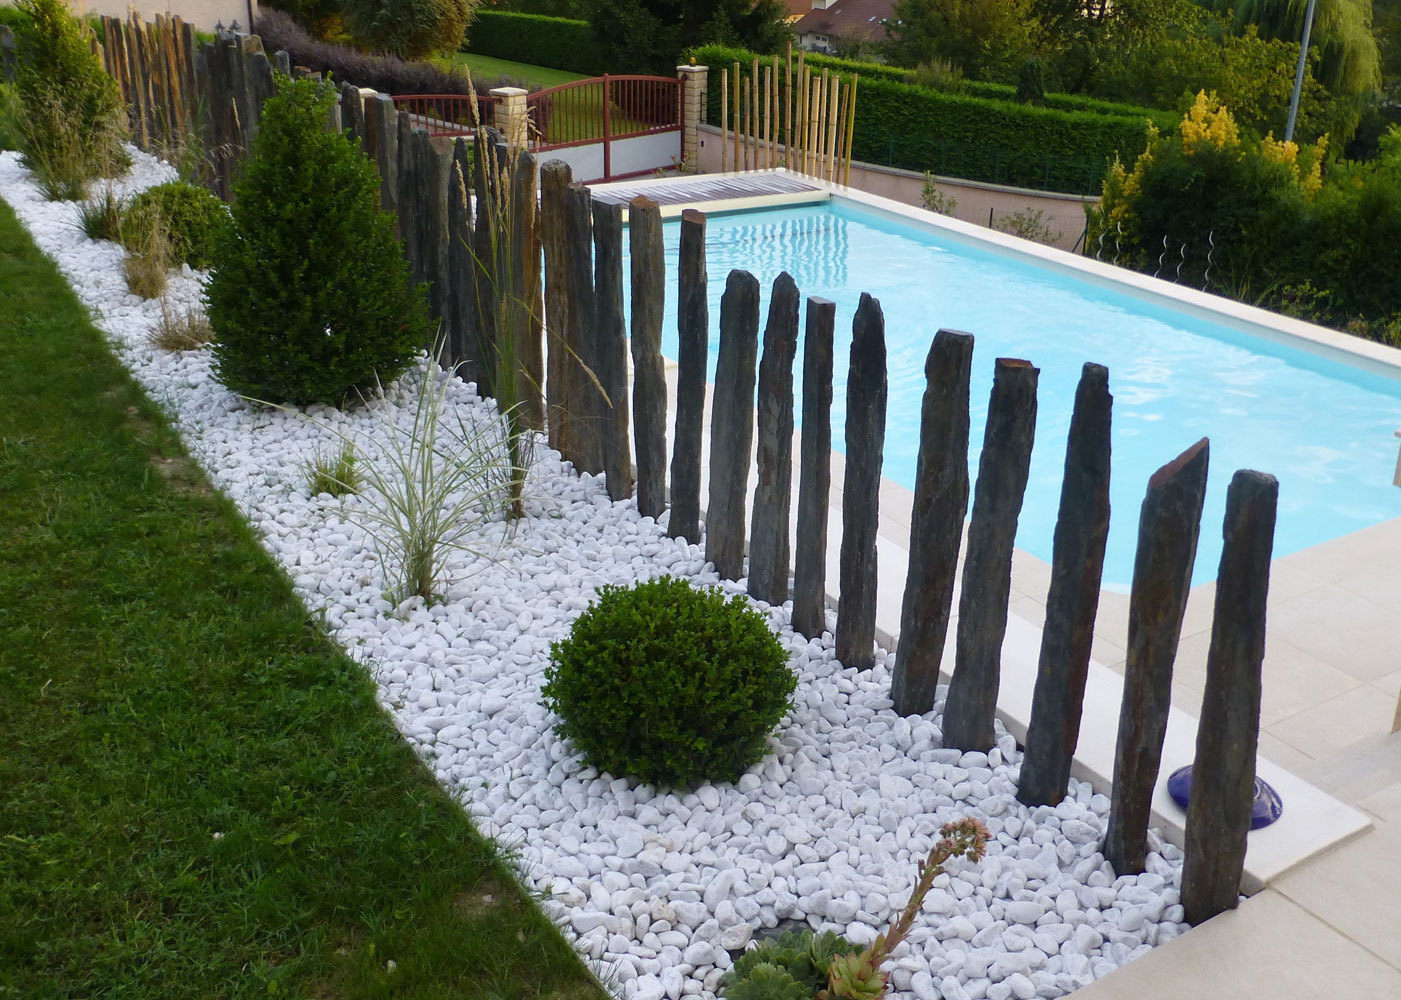 Best deco jardin avec galets blancs ideas design trends for Modele paysagiste jardin